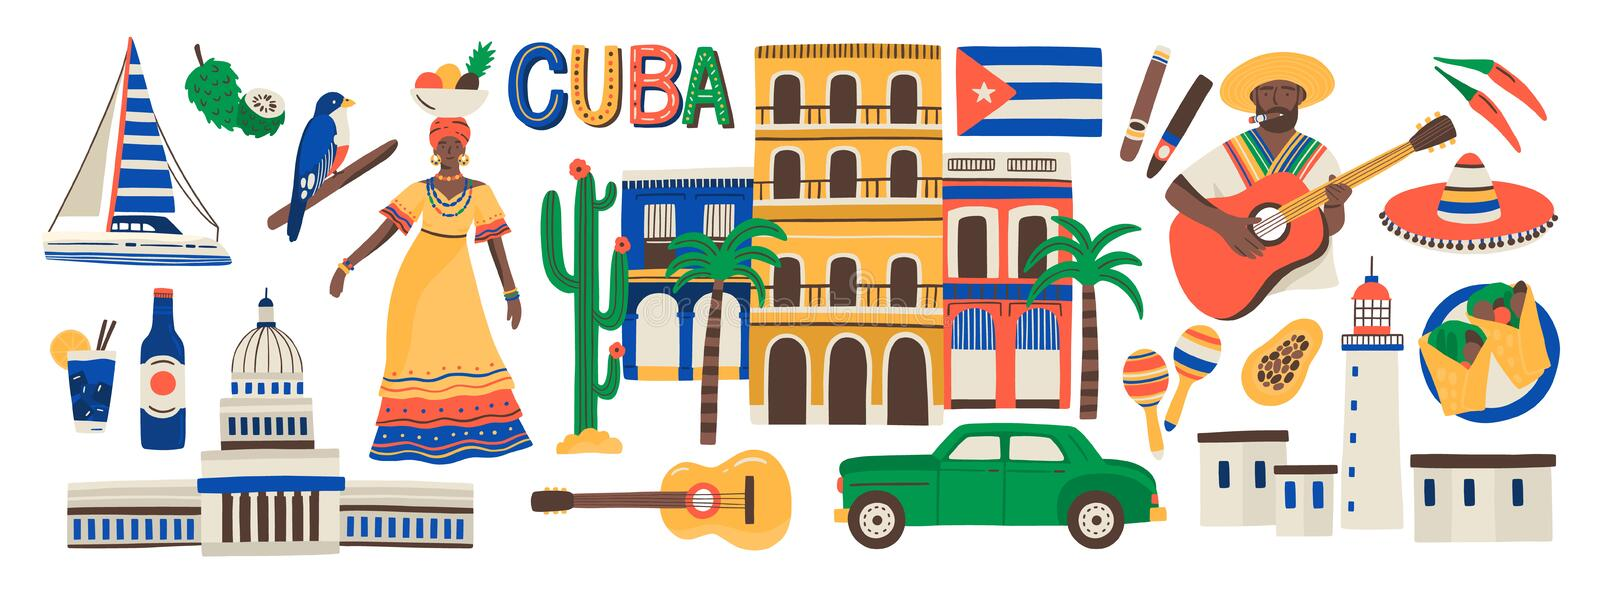 Collection of Cuba attributes isolated on white background - musical instruments, Cuban rum, flag, building, sombrero stock illustration